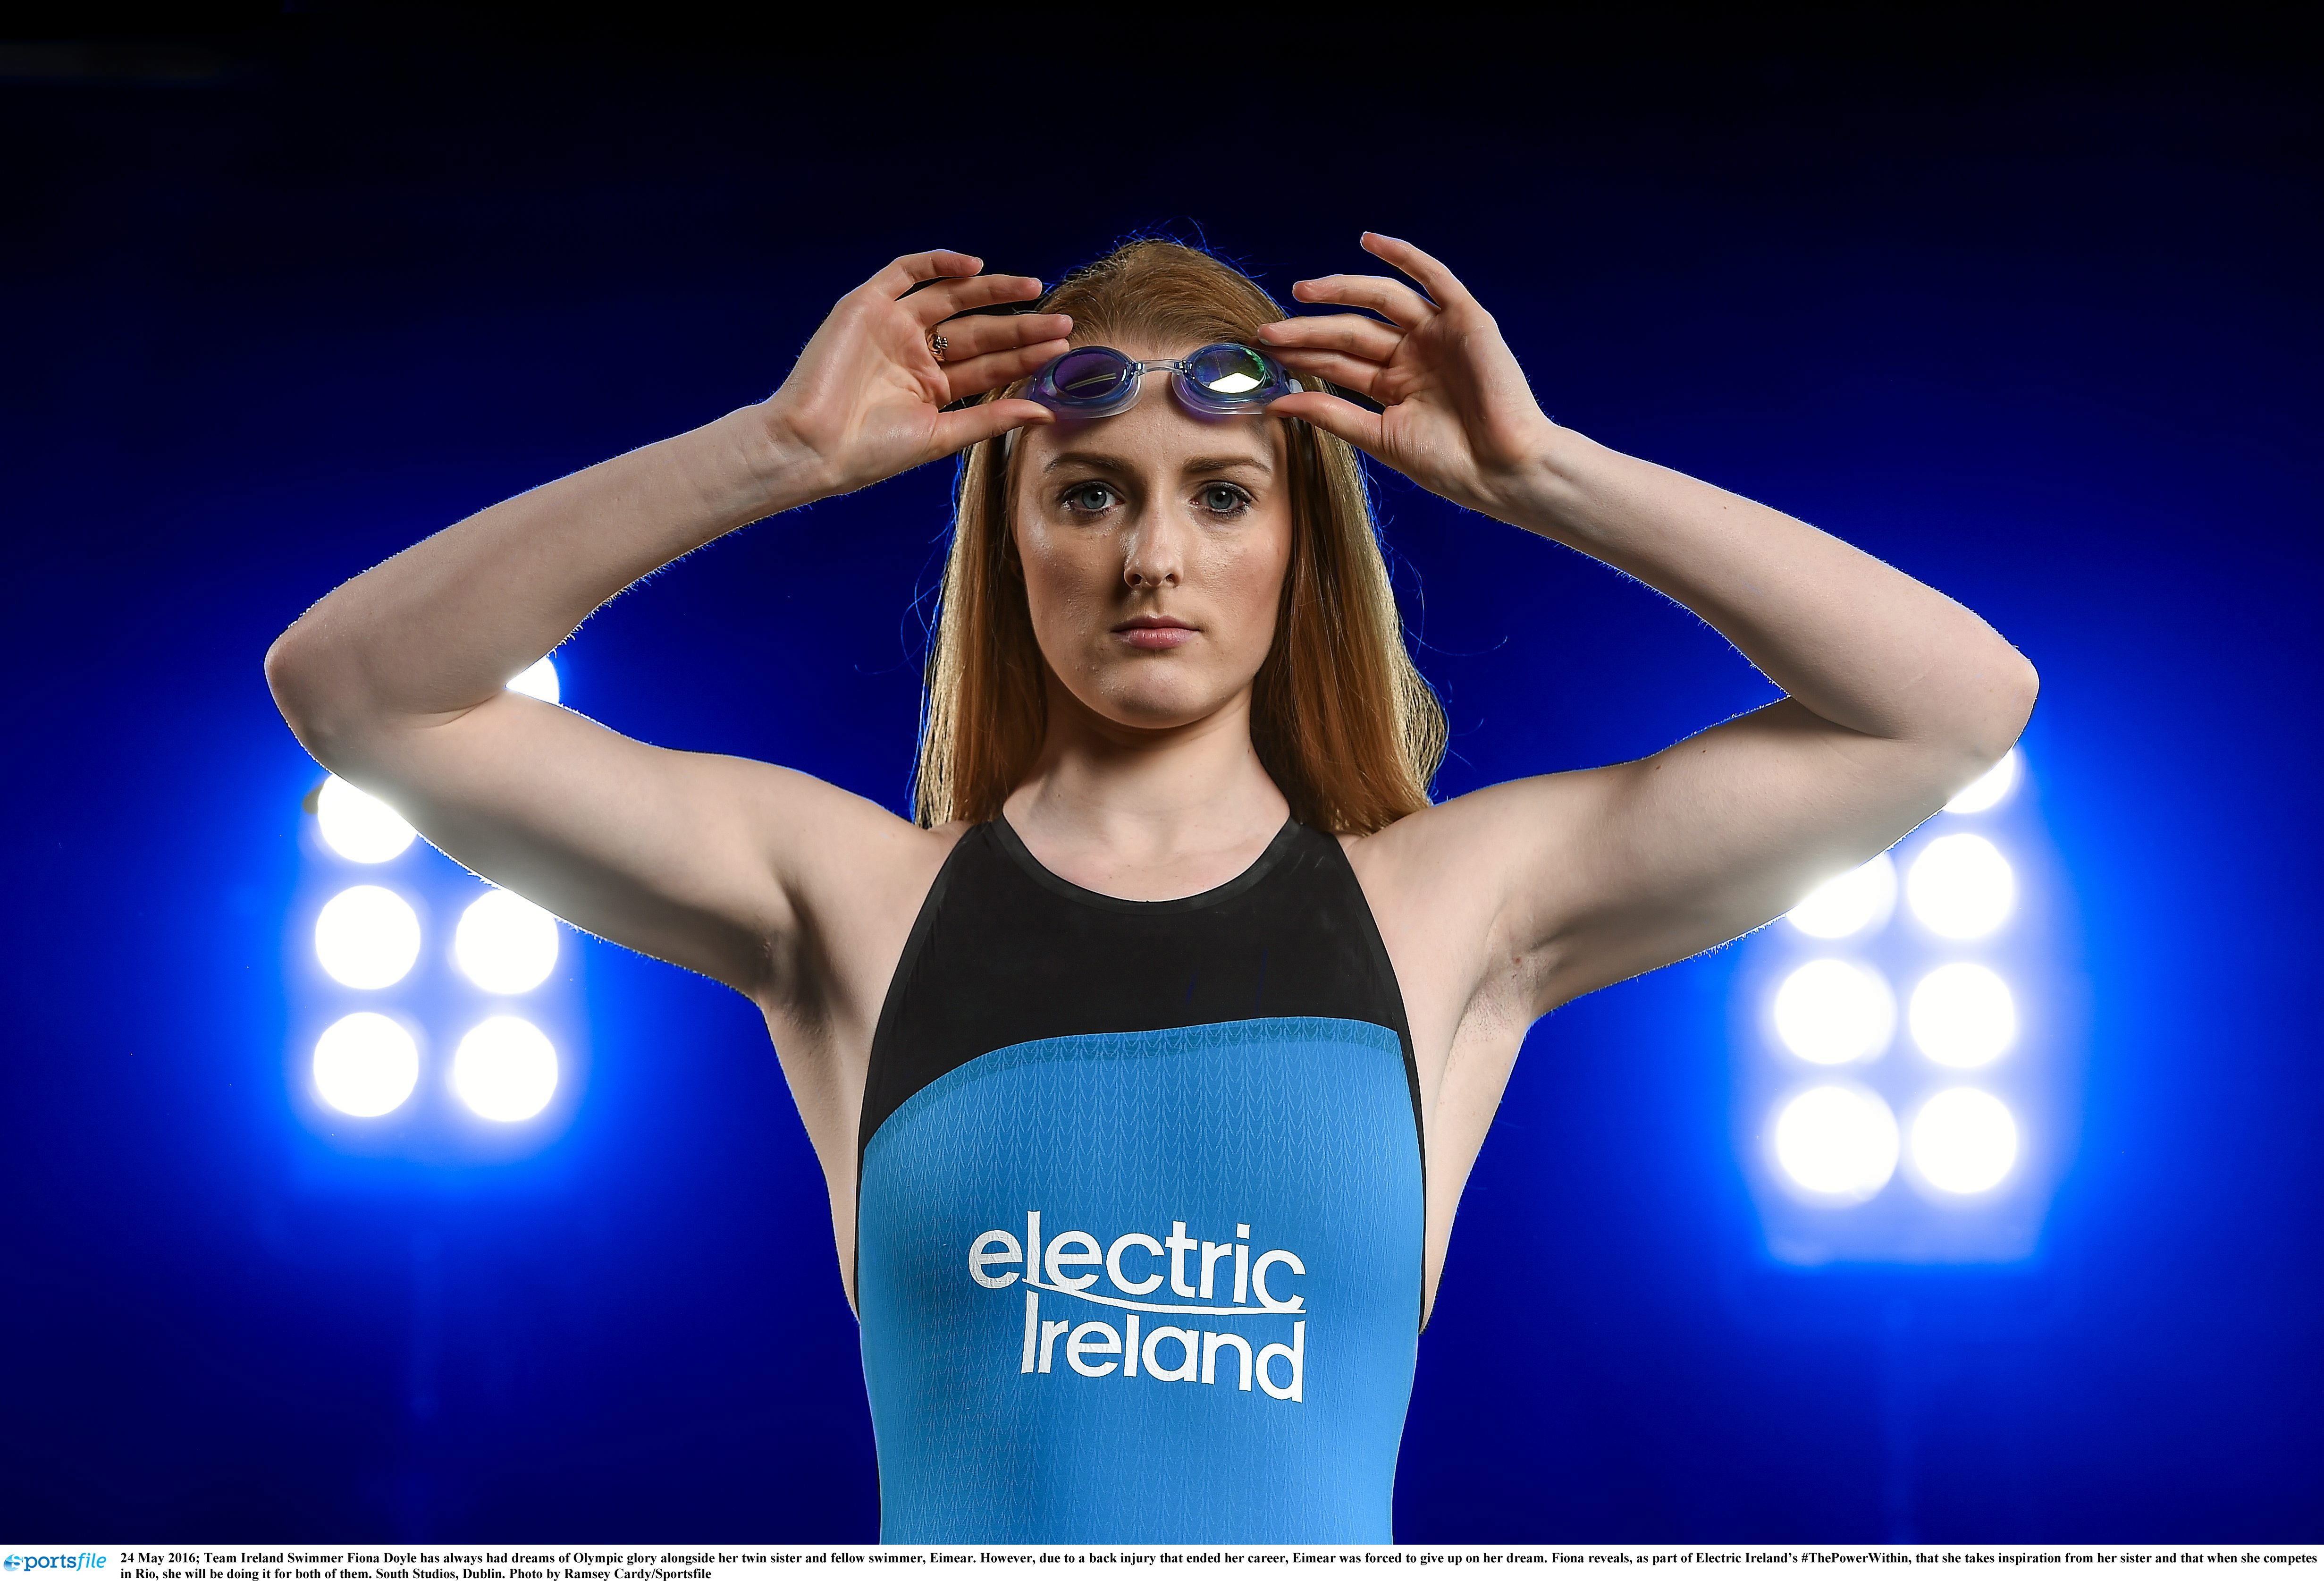 24 May 2016; Team Ireland Swimmer Fiona Doyle has always had dreams of Olympic glory alongside her twin sister and fellow swimmer, Eimear. However, due to a back injury that ended her career, Eimear was forced to give up on her dream. Fiona reveals, as part of Electric Ireland's #ThePowerWithin, that she takes inspiration from her sister and that when she competes in Rio, she will be doing it for both of them. South Studios, Dublin. Photo by Ramsey Cardy/Sportsfile